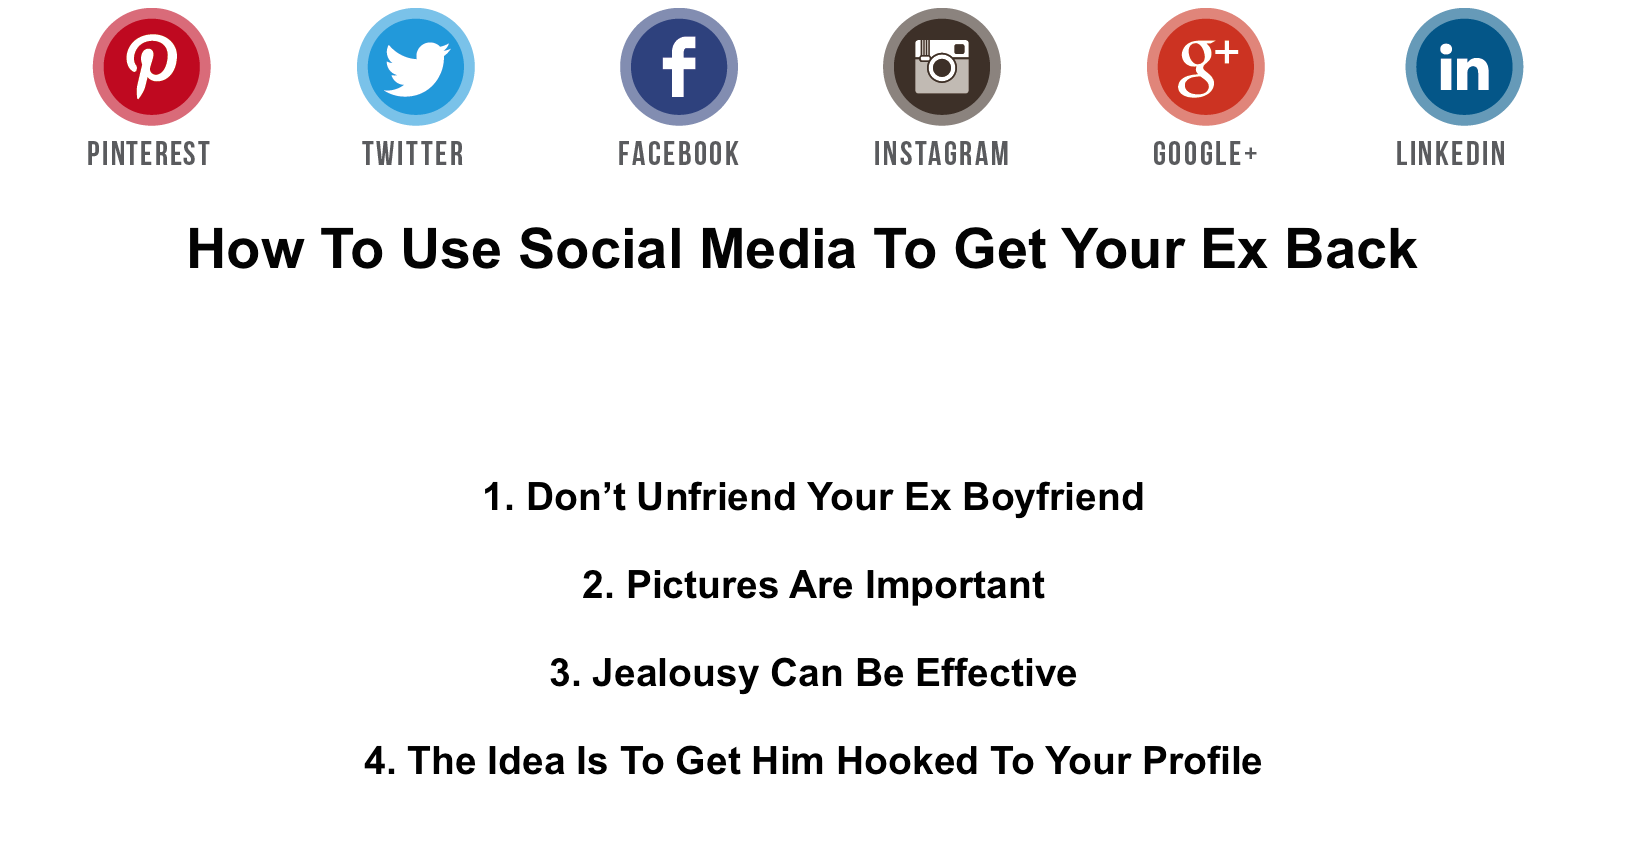 Using Social Media To Get Your Ex Boyfriend Back